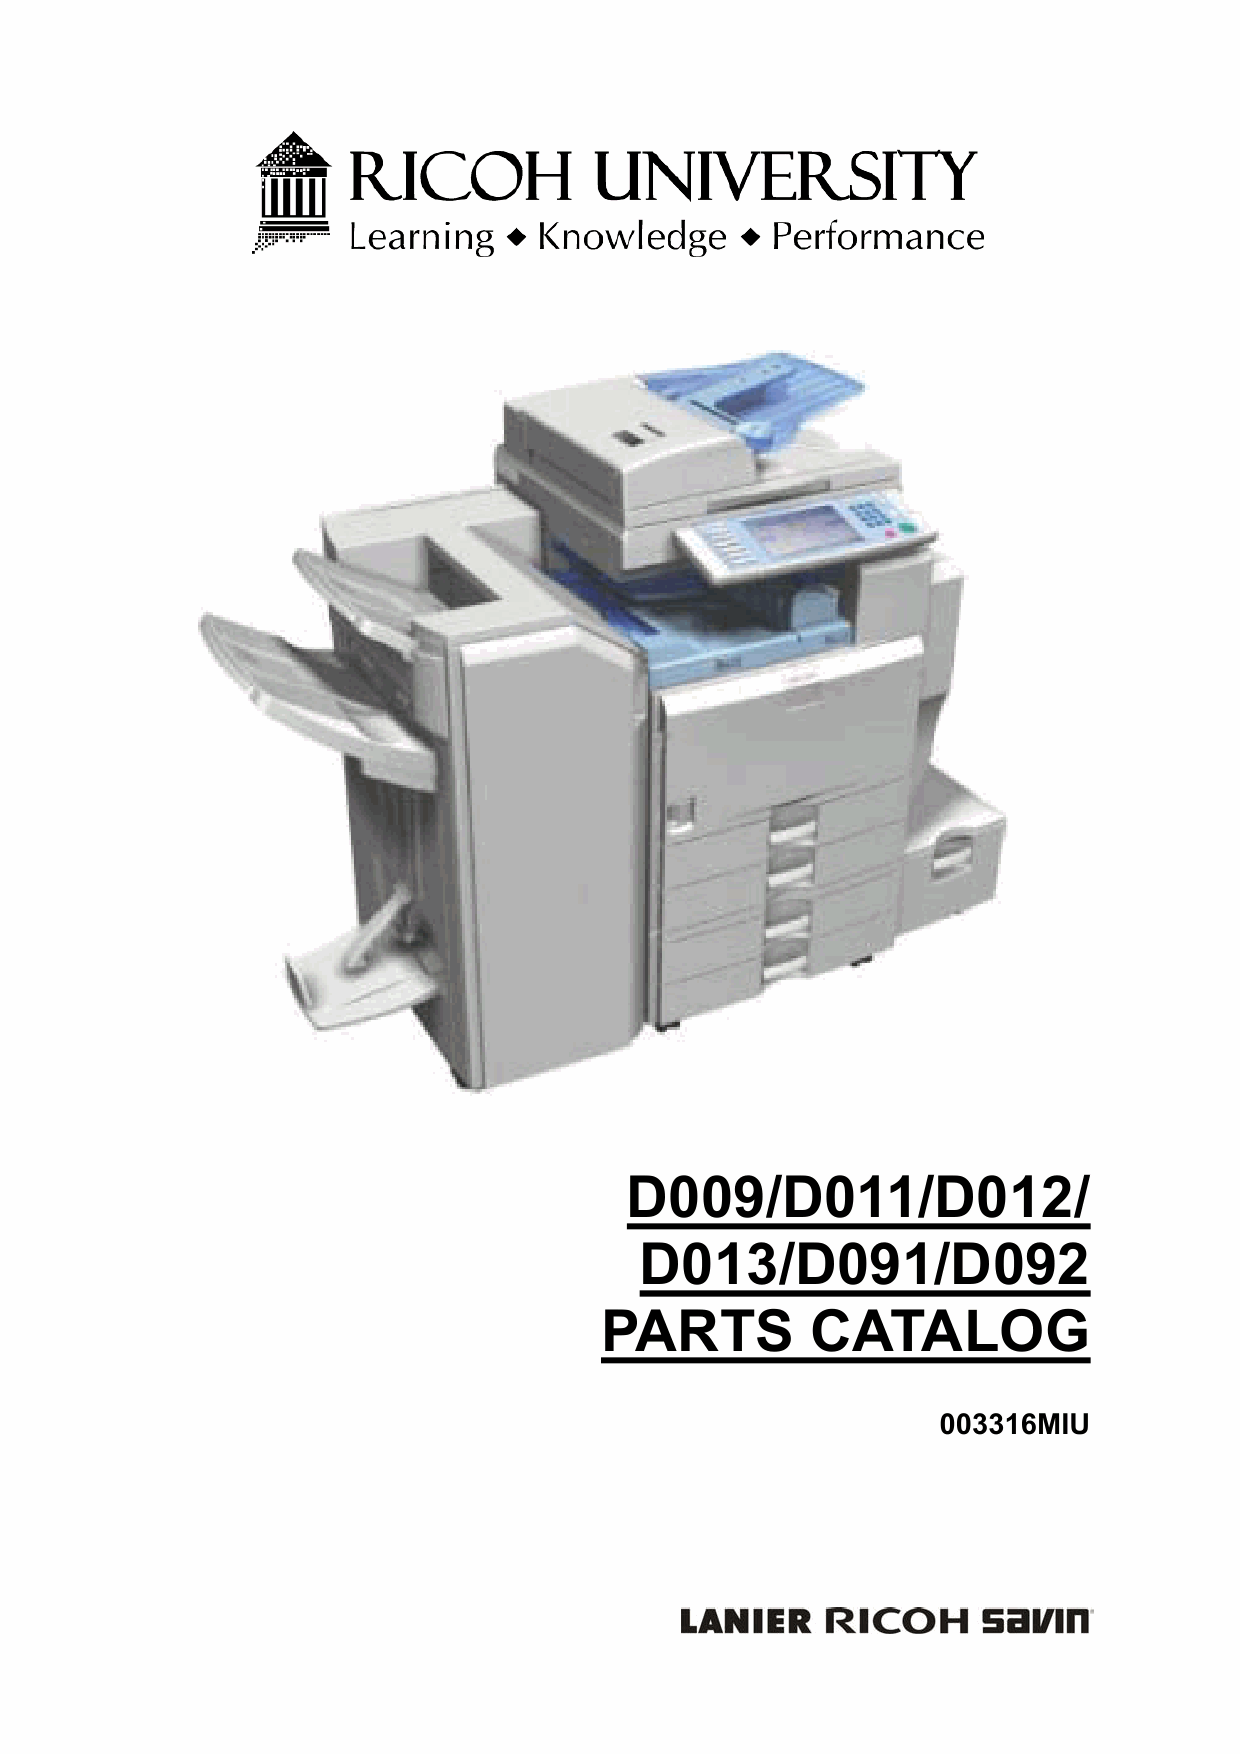 RICOH Aficio MP-4000 4001SP 40001G 5000 5001SP 5001G D009 D011 D012 D013 D091 D092 Parts Catalog-1